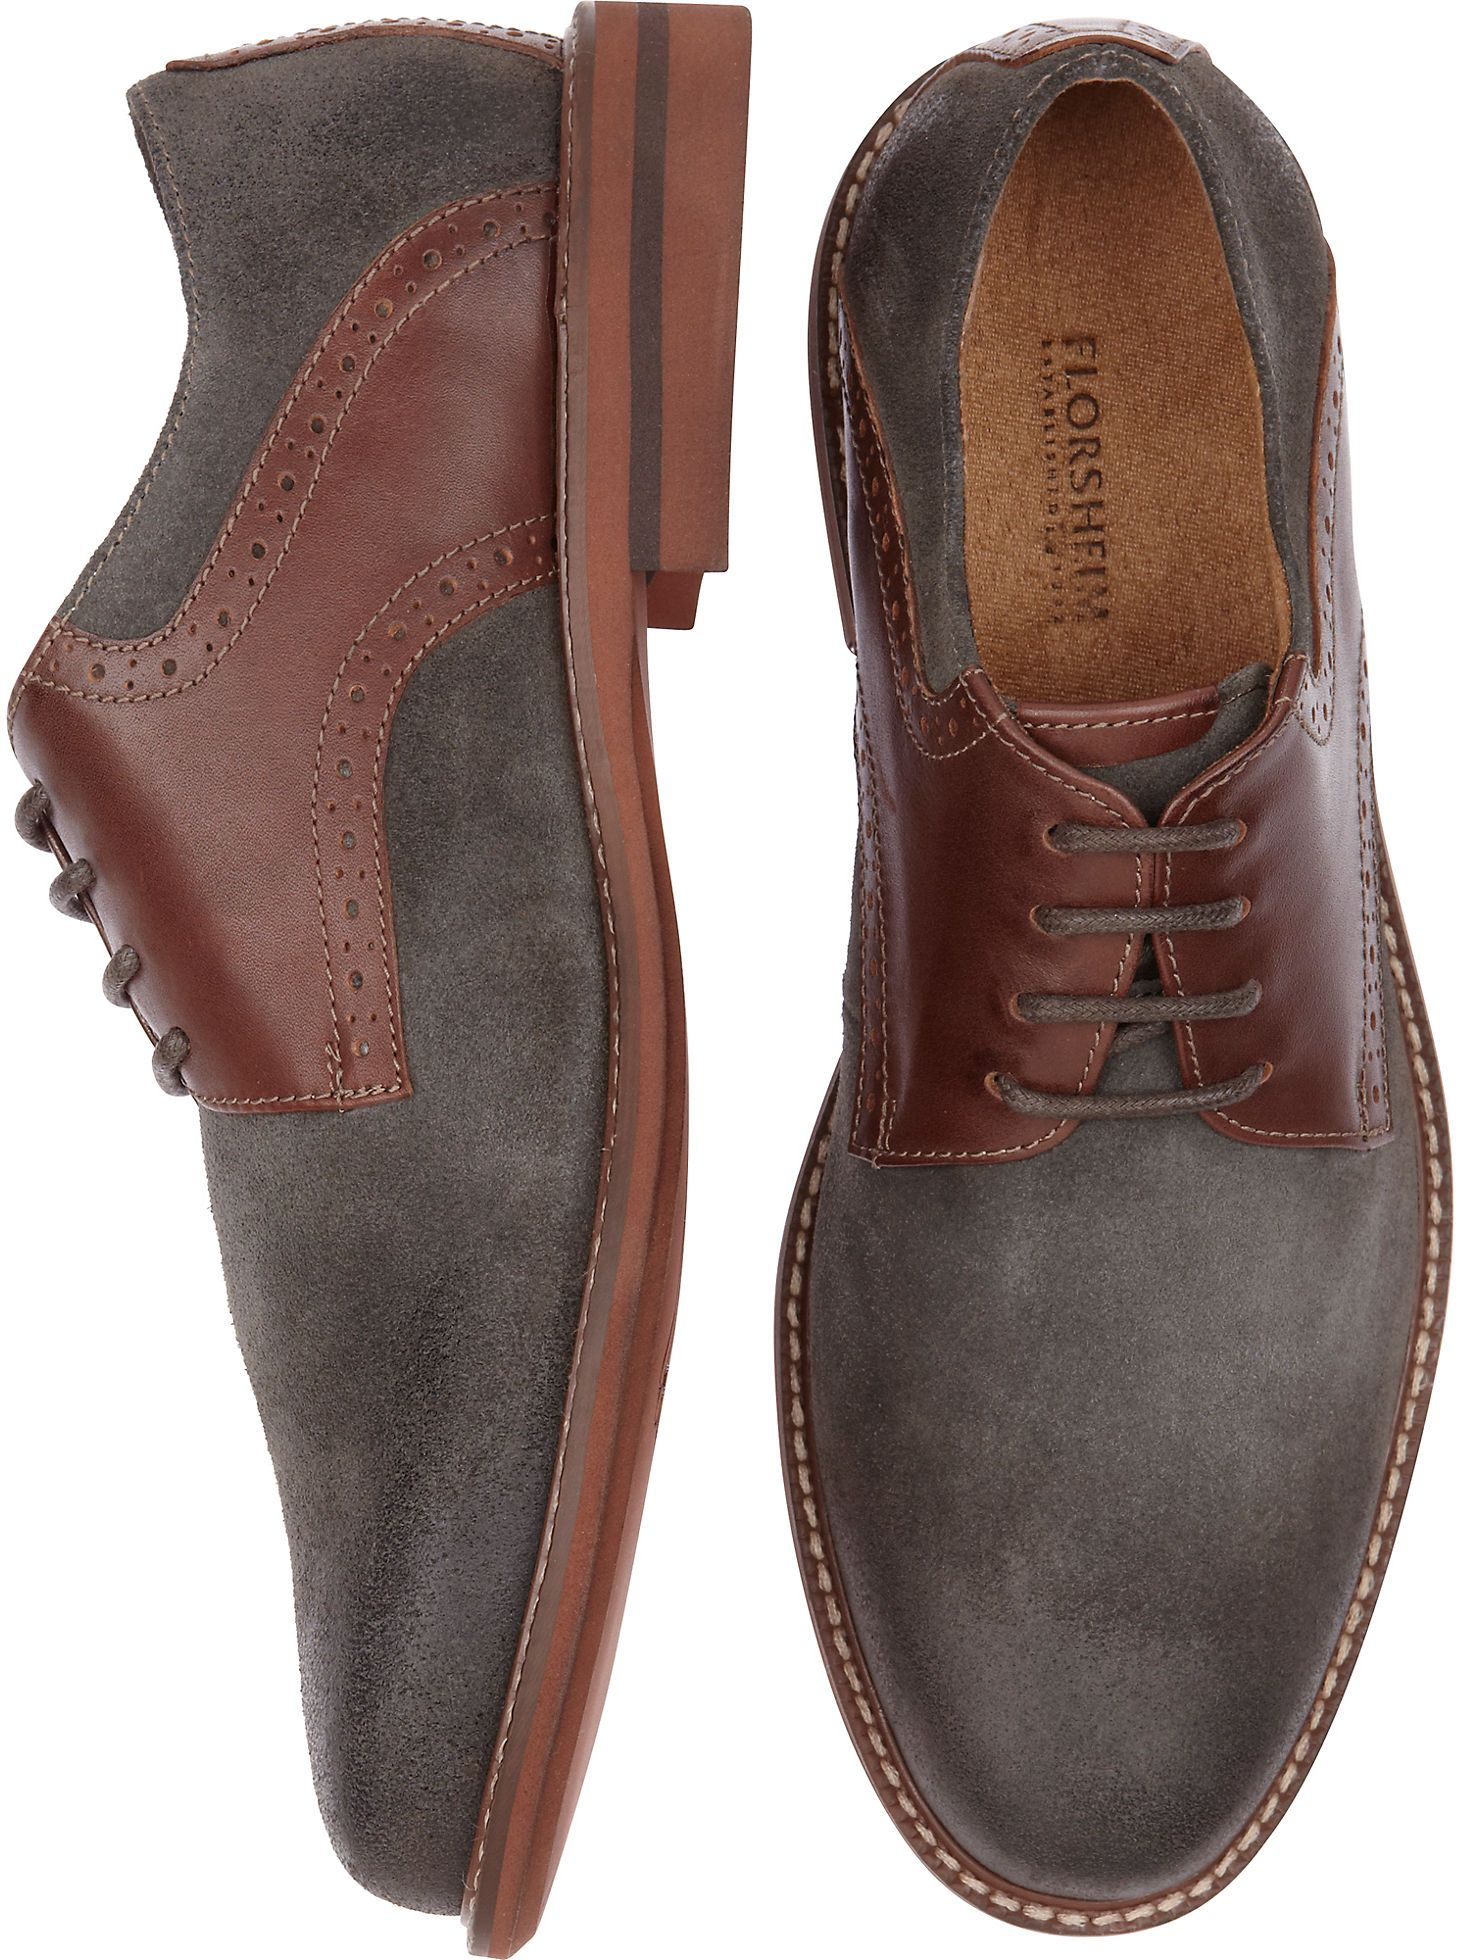 Shoes - Florsheim Gray and Brown Lace Up Dress Shoes - Men s Wearhouse eefbbba04ea